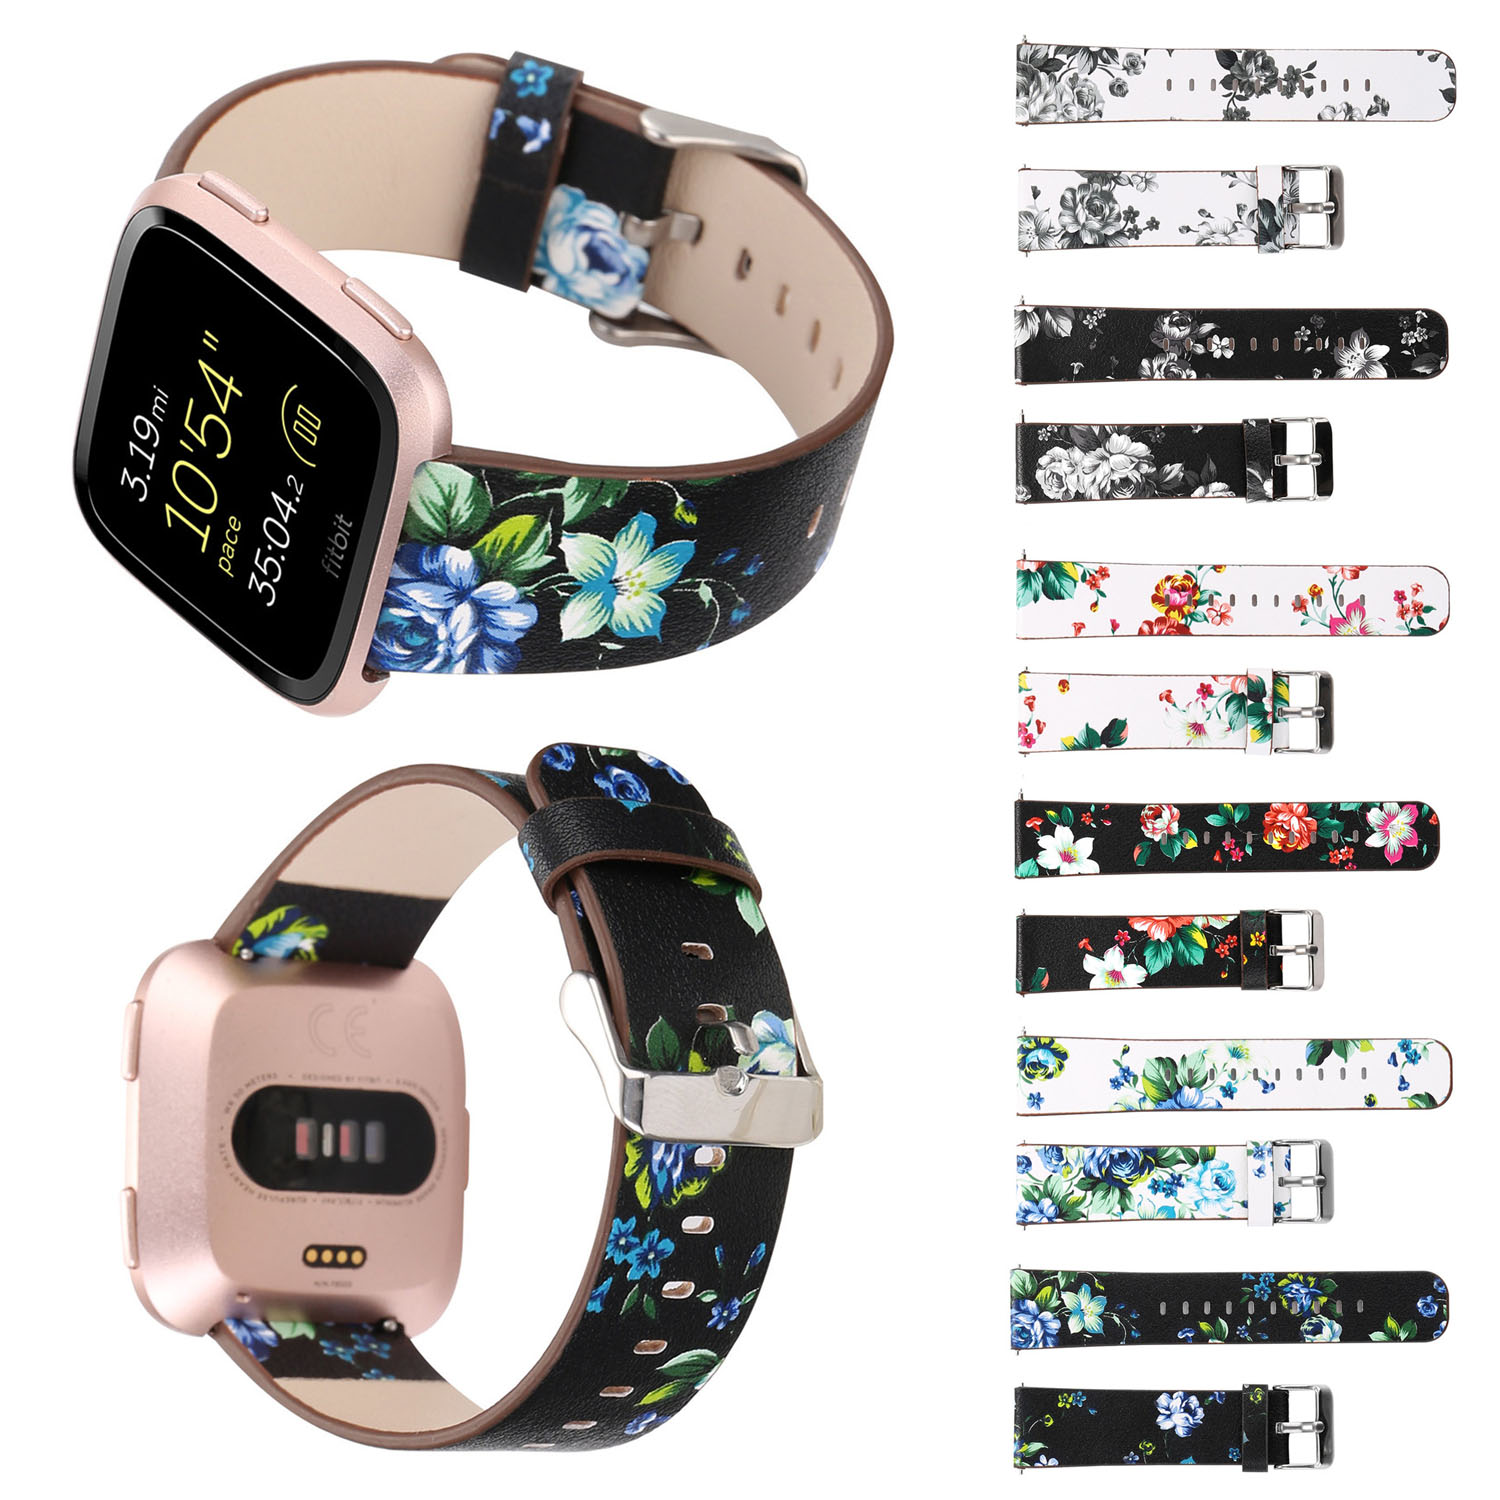 Retro Flower Leather Strap For Fitbit Versa Band Floral Metal Buckle Replacement Watch Bands for Versa Smart Watch Strap w Pins smart watch usb charging box cable for fitbit versa